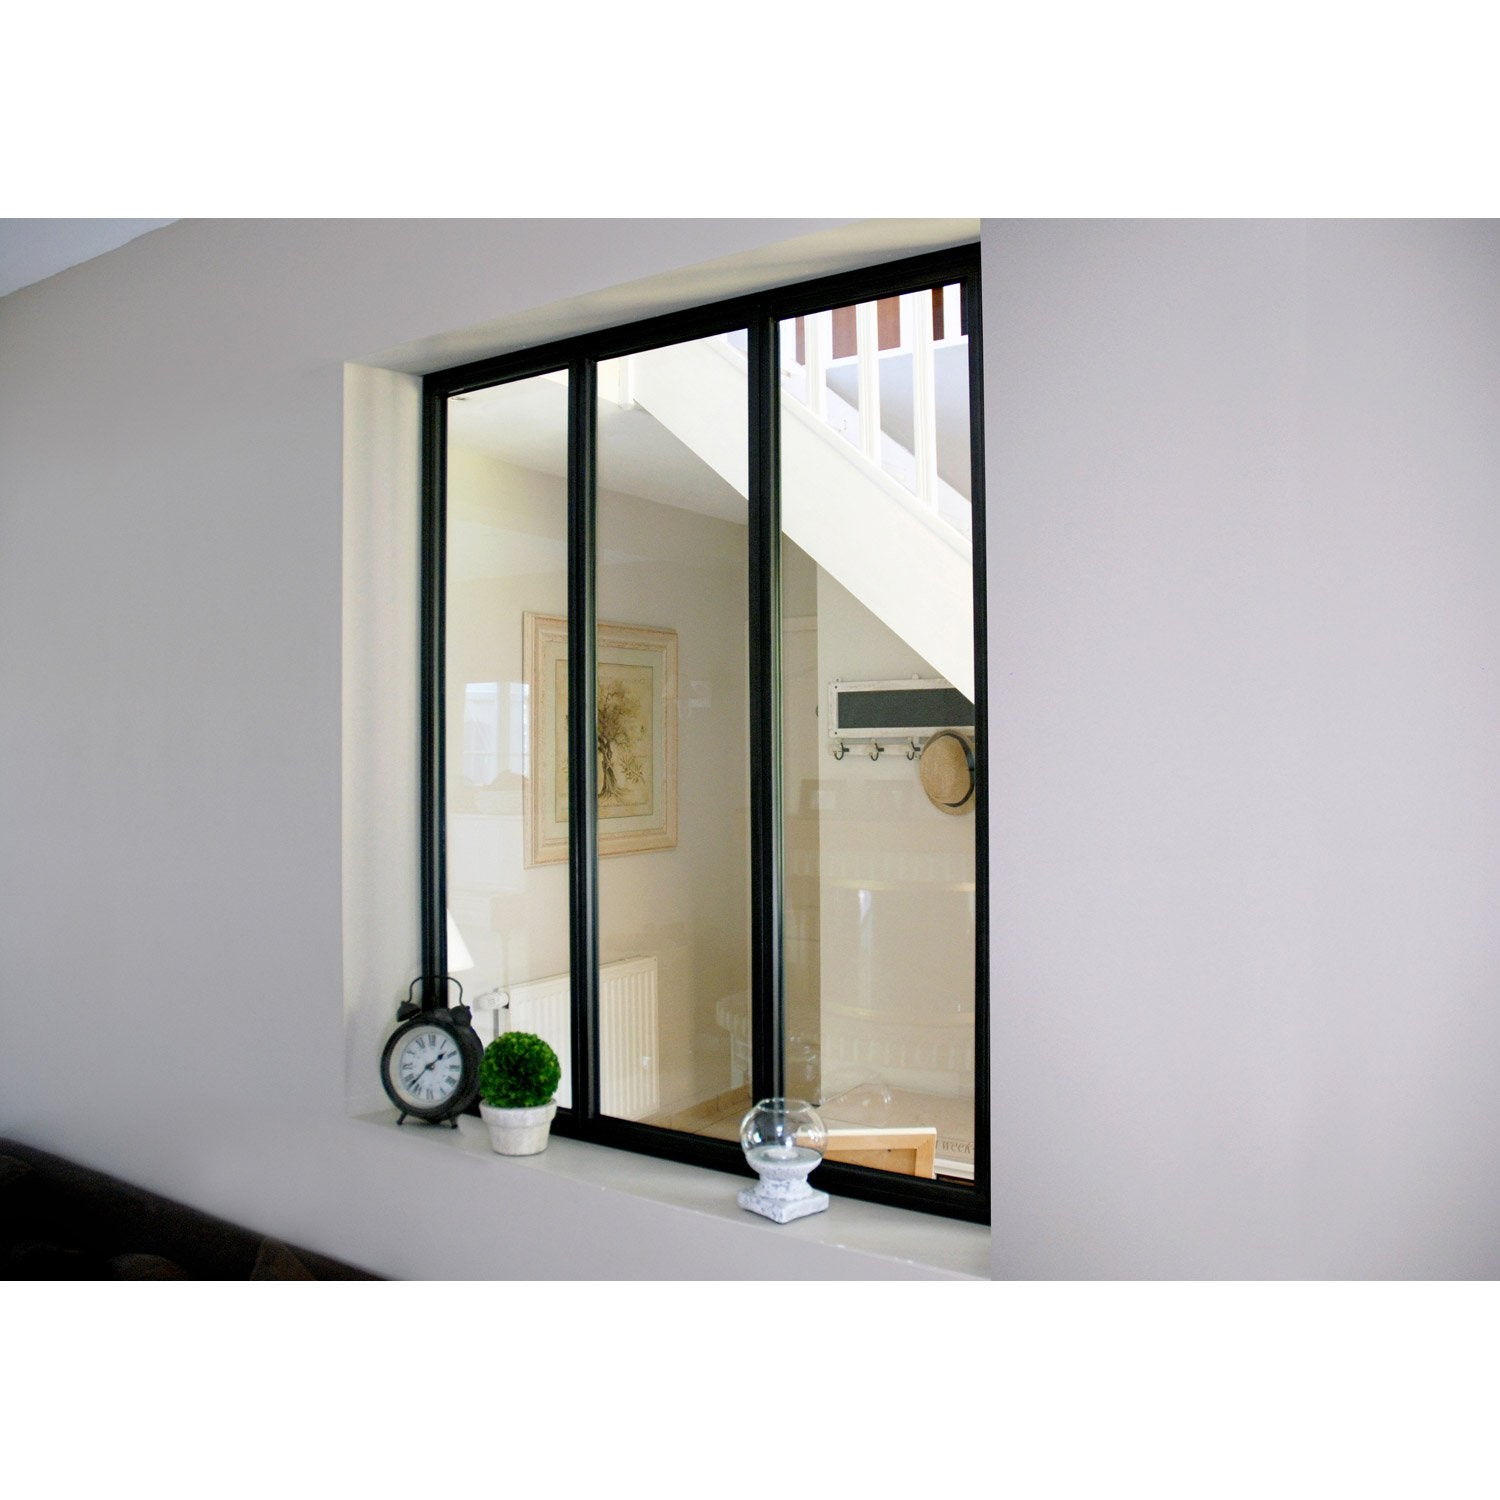 Verri re atelier aluminium noir vitrage non fourni h 1 for Cloison imitation verriere